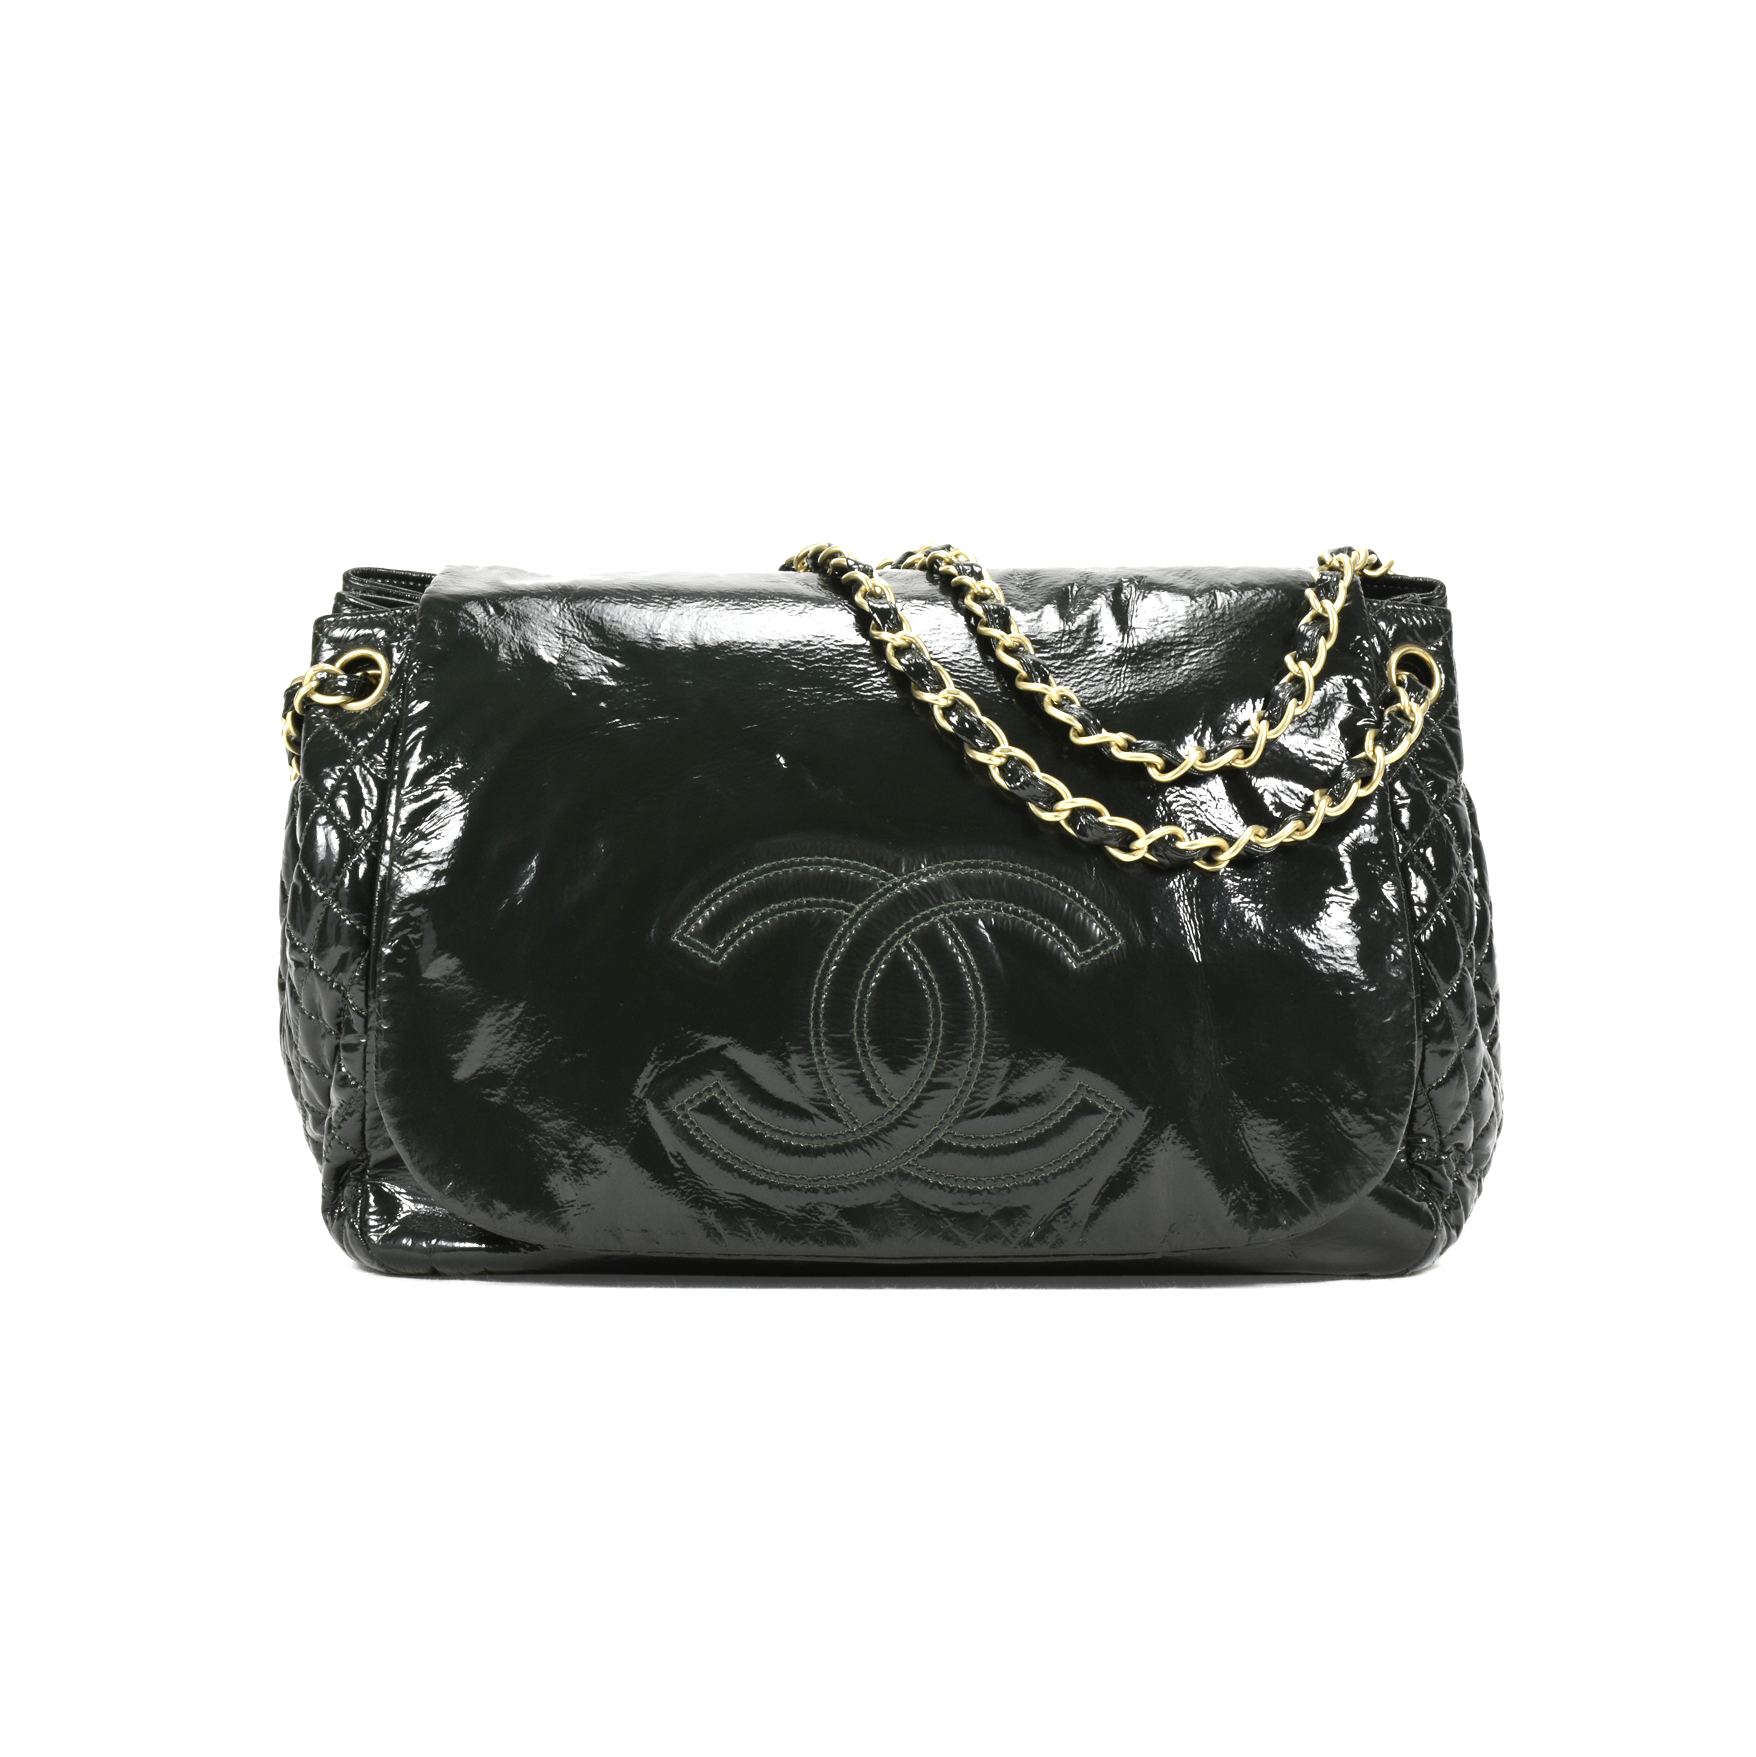 a9385e790002 Authentic Second Hand Chanel Patent Vinyl Rock and Chain Large Flap Bag  (PSS-200-00901)